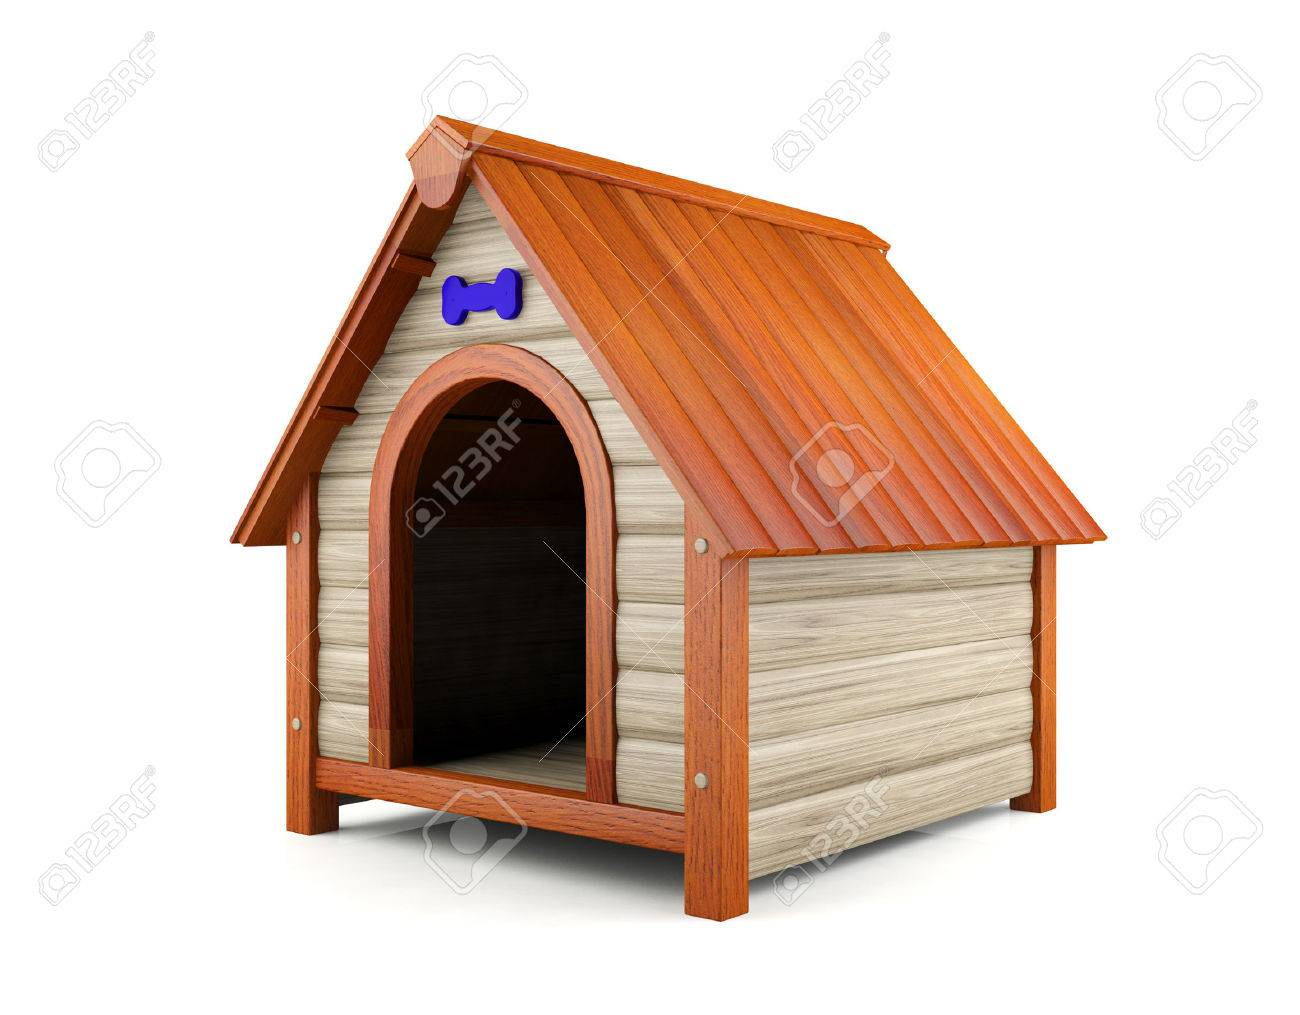 Wooden Dog House Isolated On White Background Stock Photo Picture